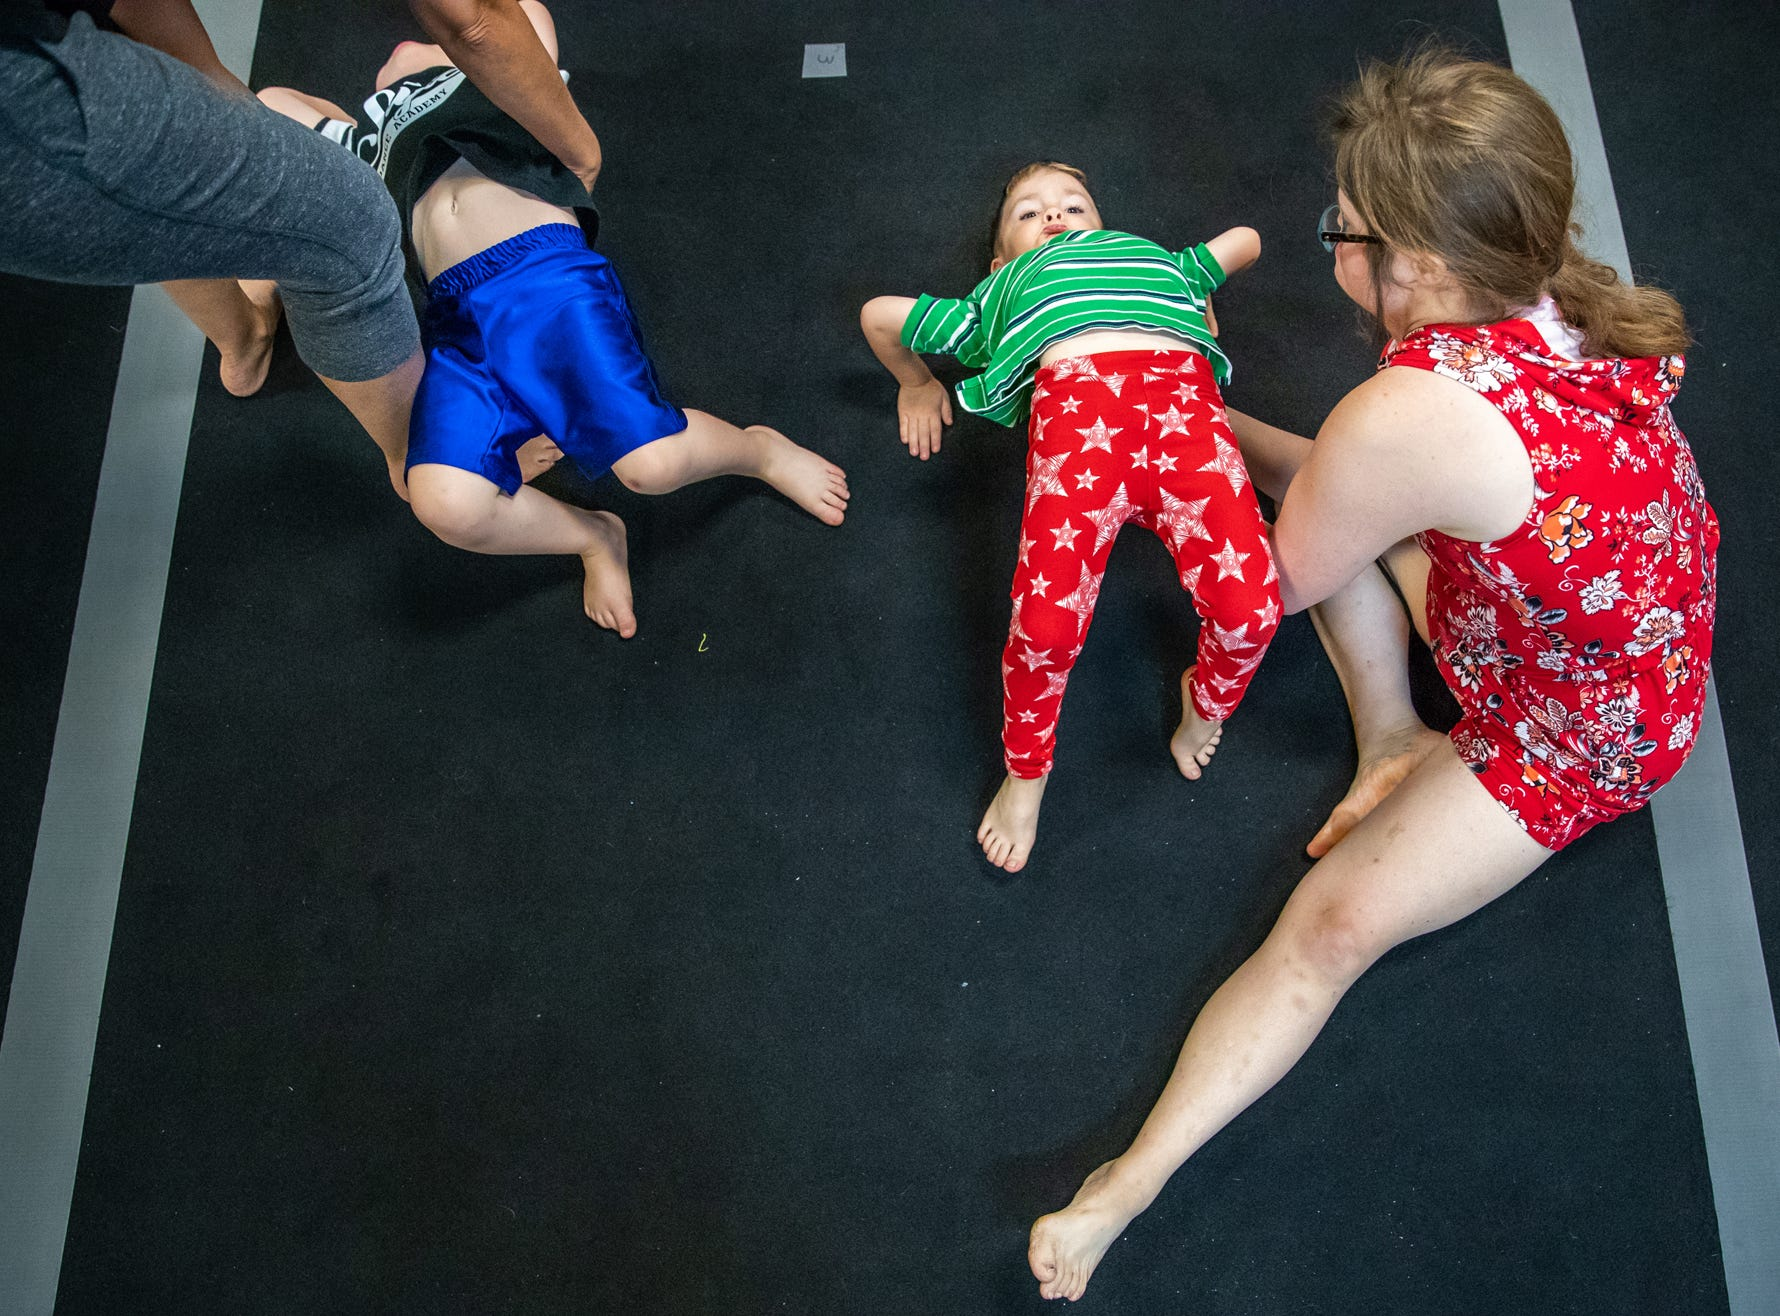 """Mickey Deputy, as well as fellow instructor Emily McCullough, help students Max Black, 4, and Owen Riley, 3, work on their backbends during gymnastics class at Style Dance Academy in Franklin, Ind., on Tuesday, Oct. 9, 2018. """"Nice!"""" said Deputy, as she helps Black arch his back. """"Hands back, hands back."""""""